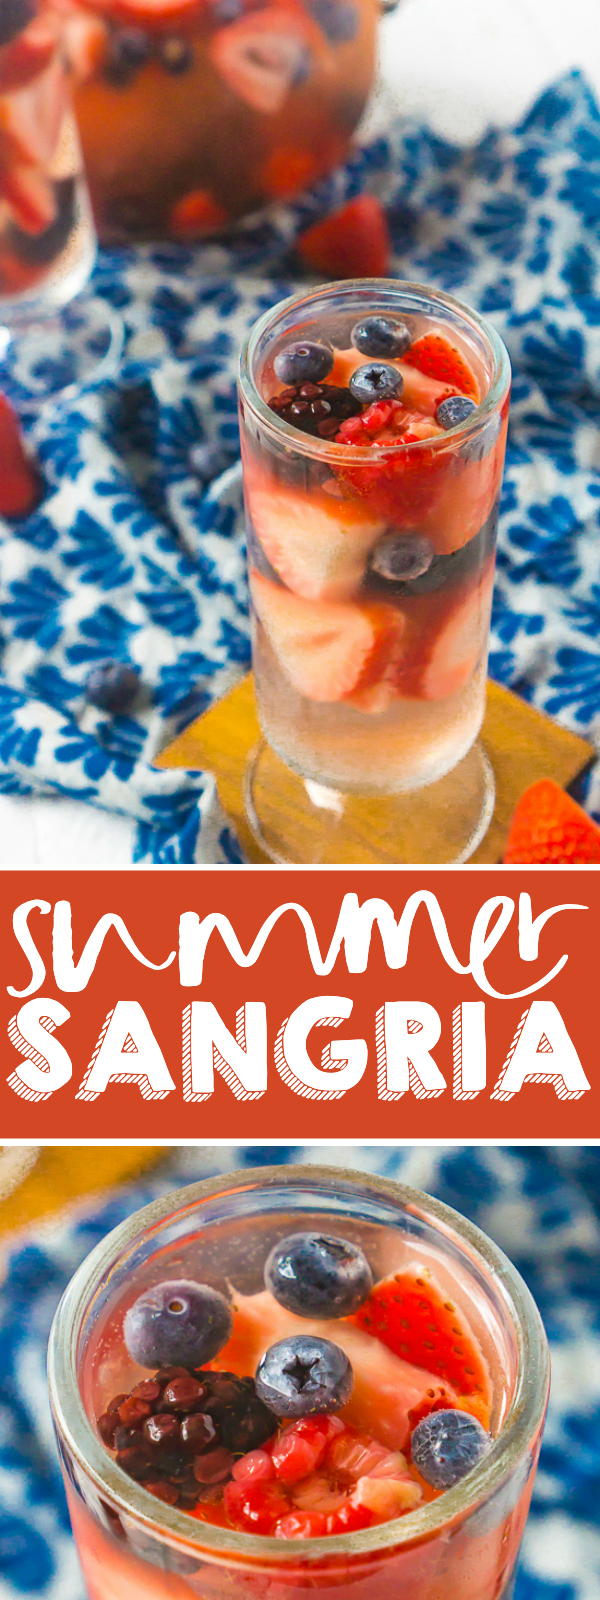 Filled with delicious summer berries, this is the BEST Summer Sangria Recipe! It's light, refreshing and so easy to make and customize all summer long. Plus, it doesn't need to sit over night making it great for summer parties!| THE LOVE NERDS #SANGRIARECIPE #SUMMERCOCKTAIL #WINECOCKTAIL